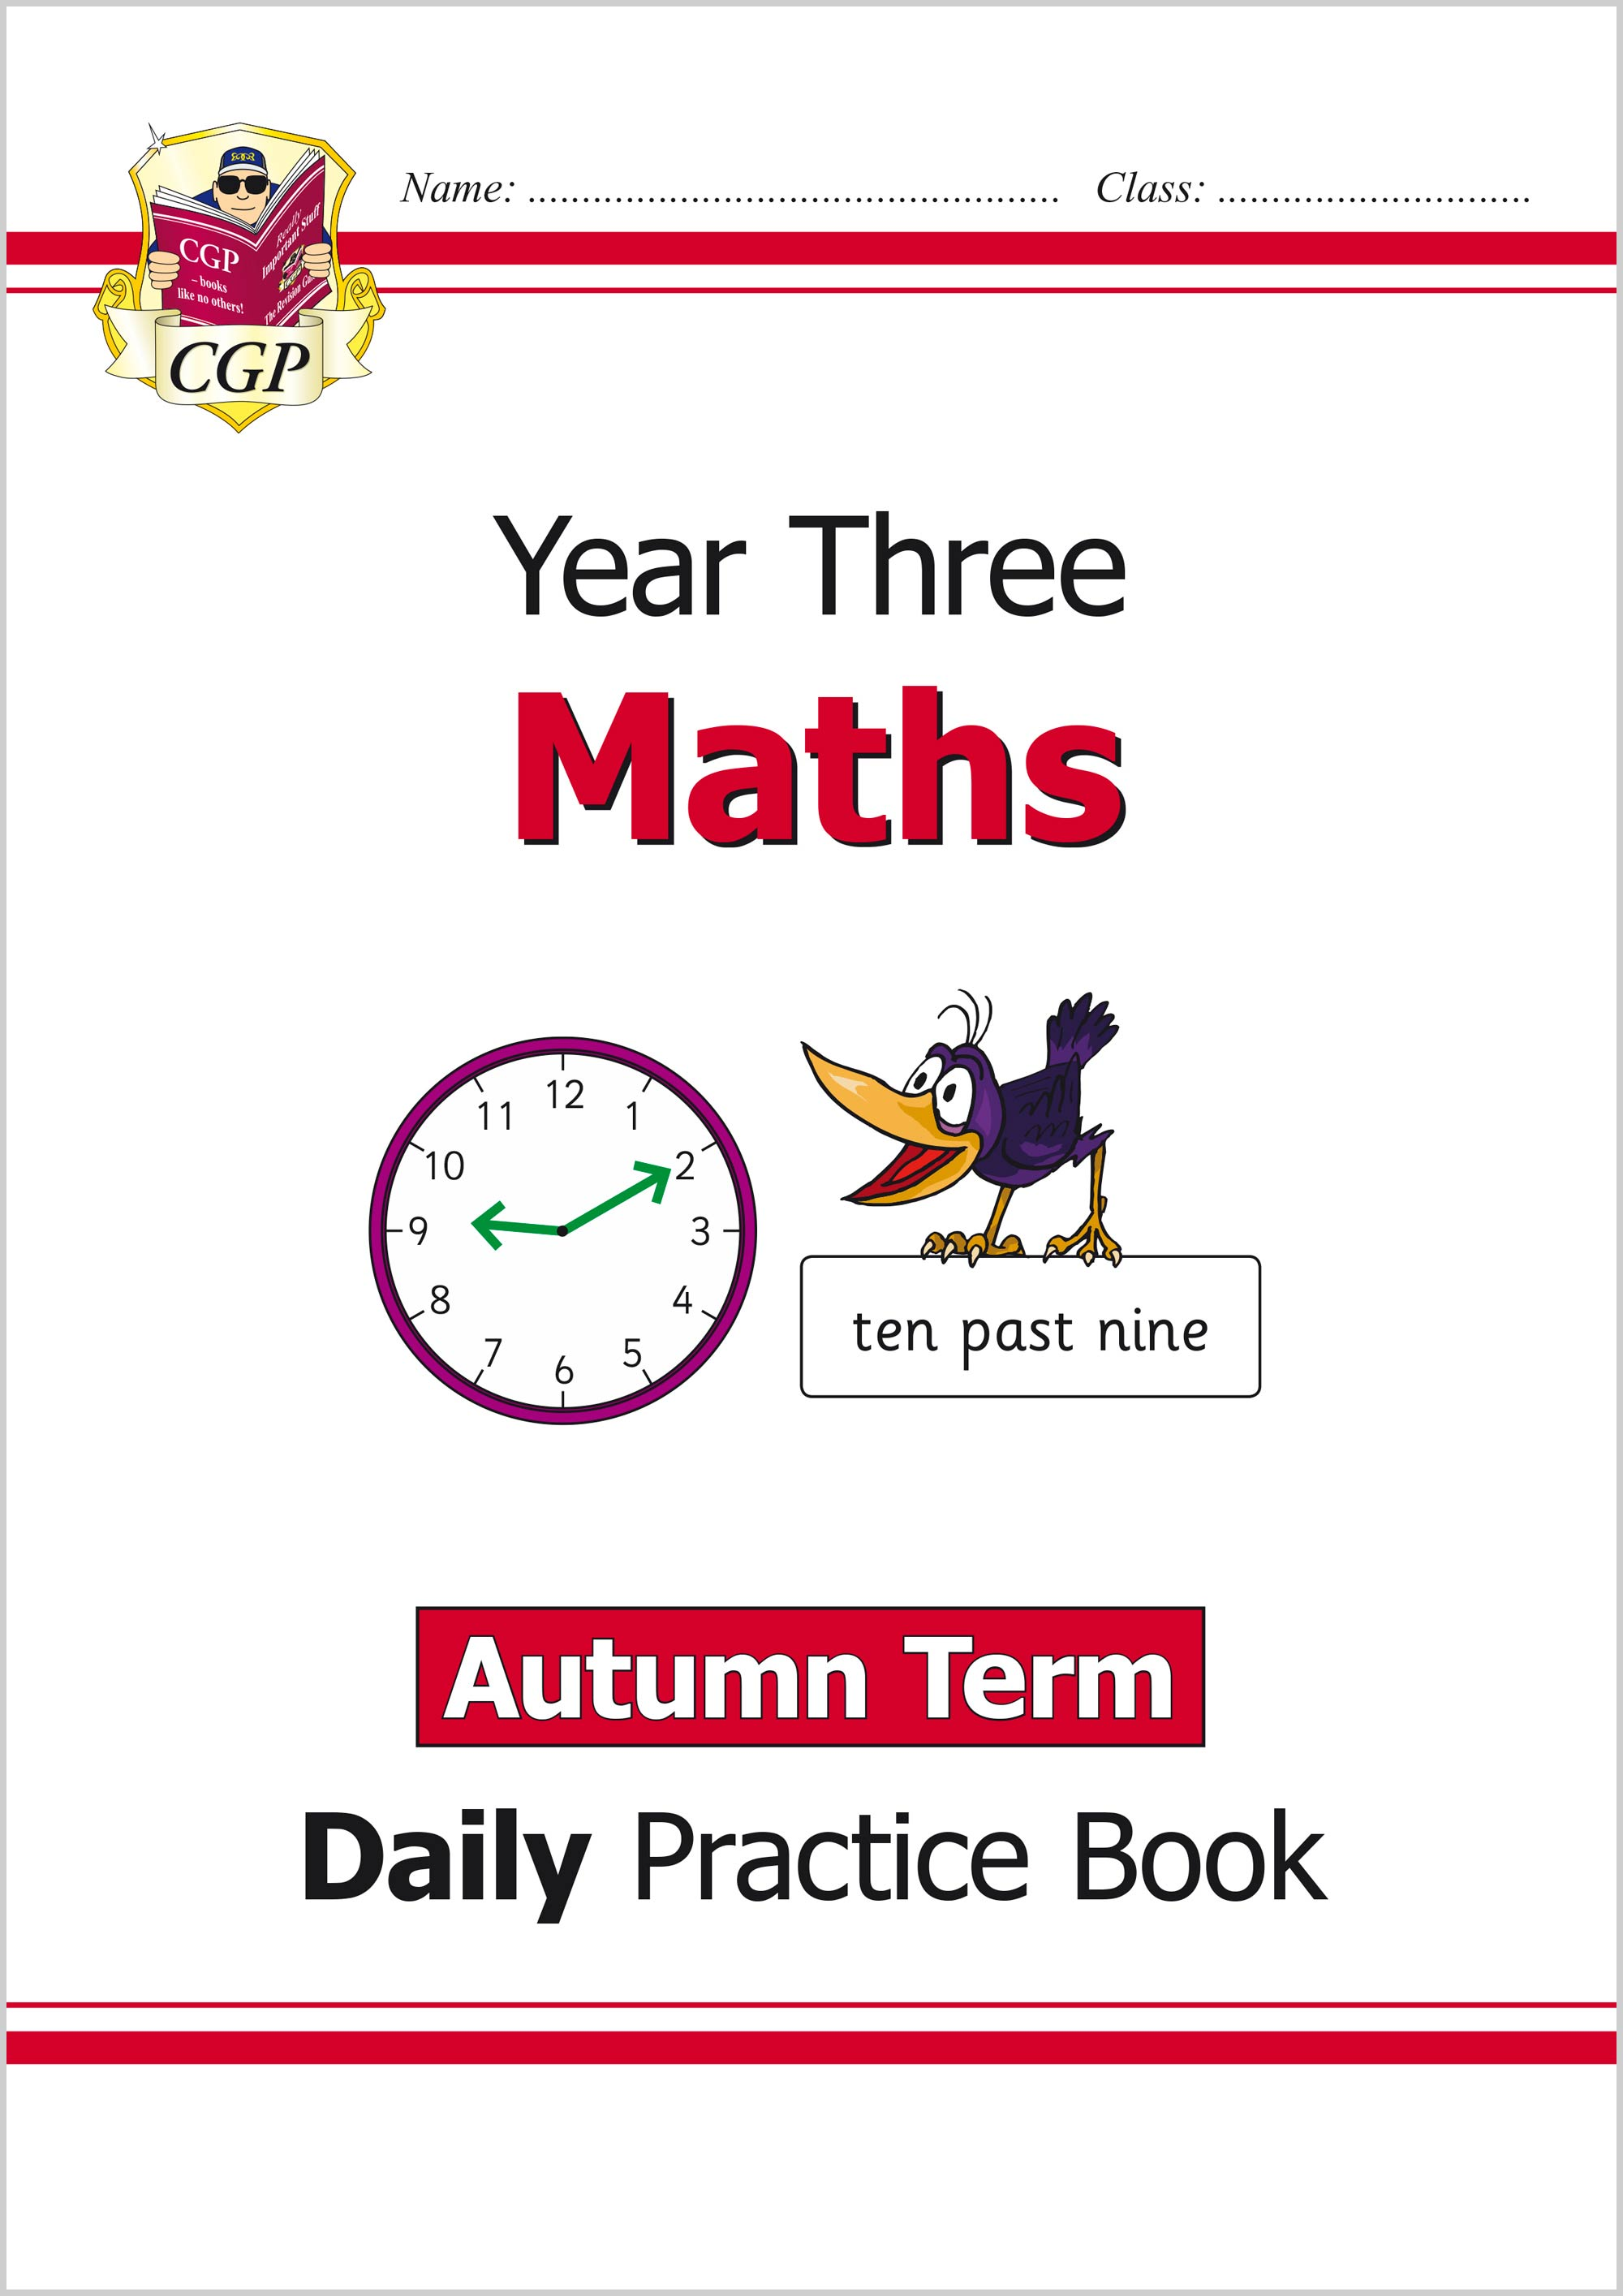 M3WAU21 - New KS2 Maths Daily Practice Book: Year 3 - Autumn Term